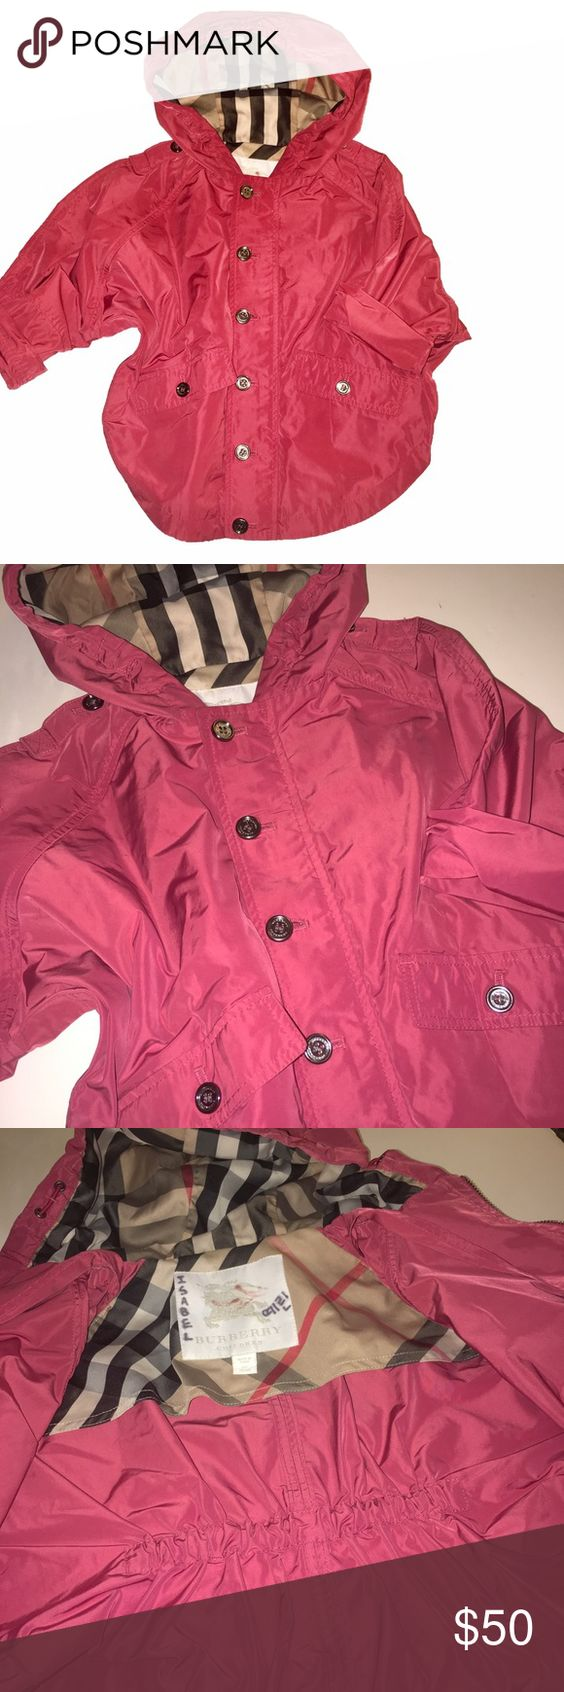 Girls Burberry 2T Rain Jacket ☔️